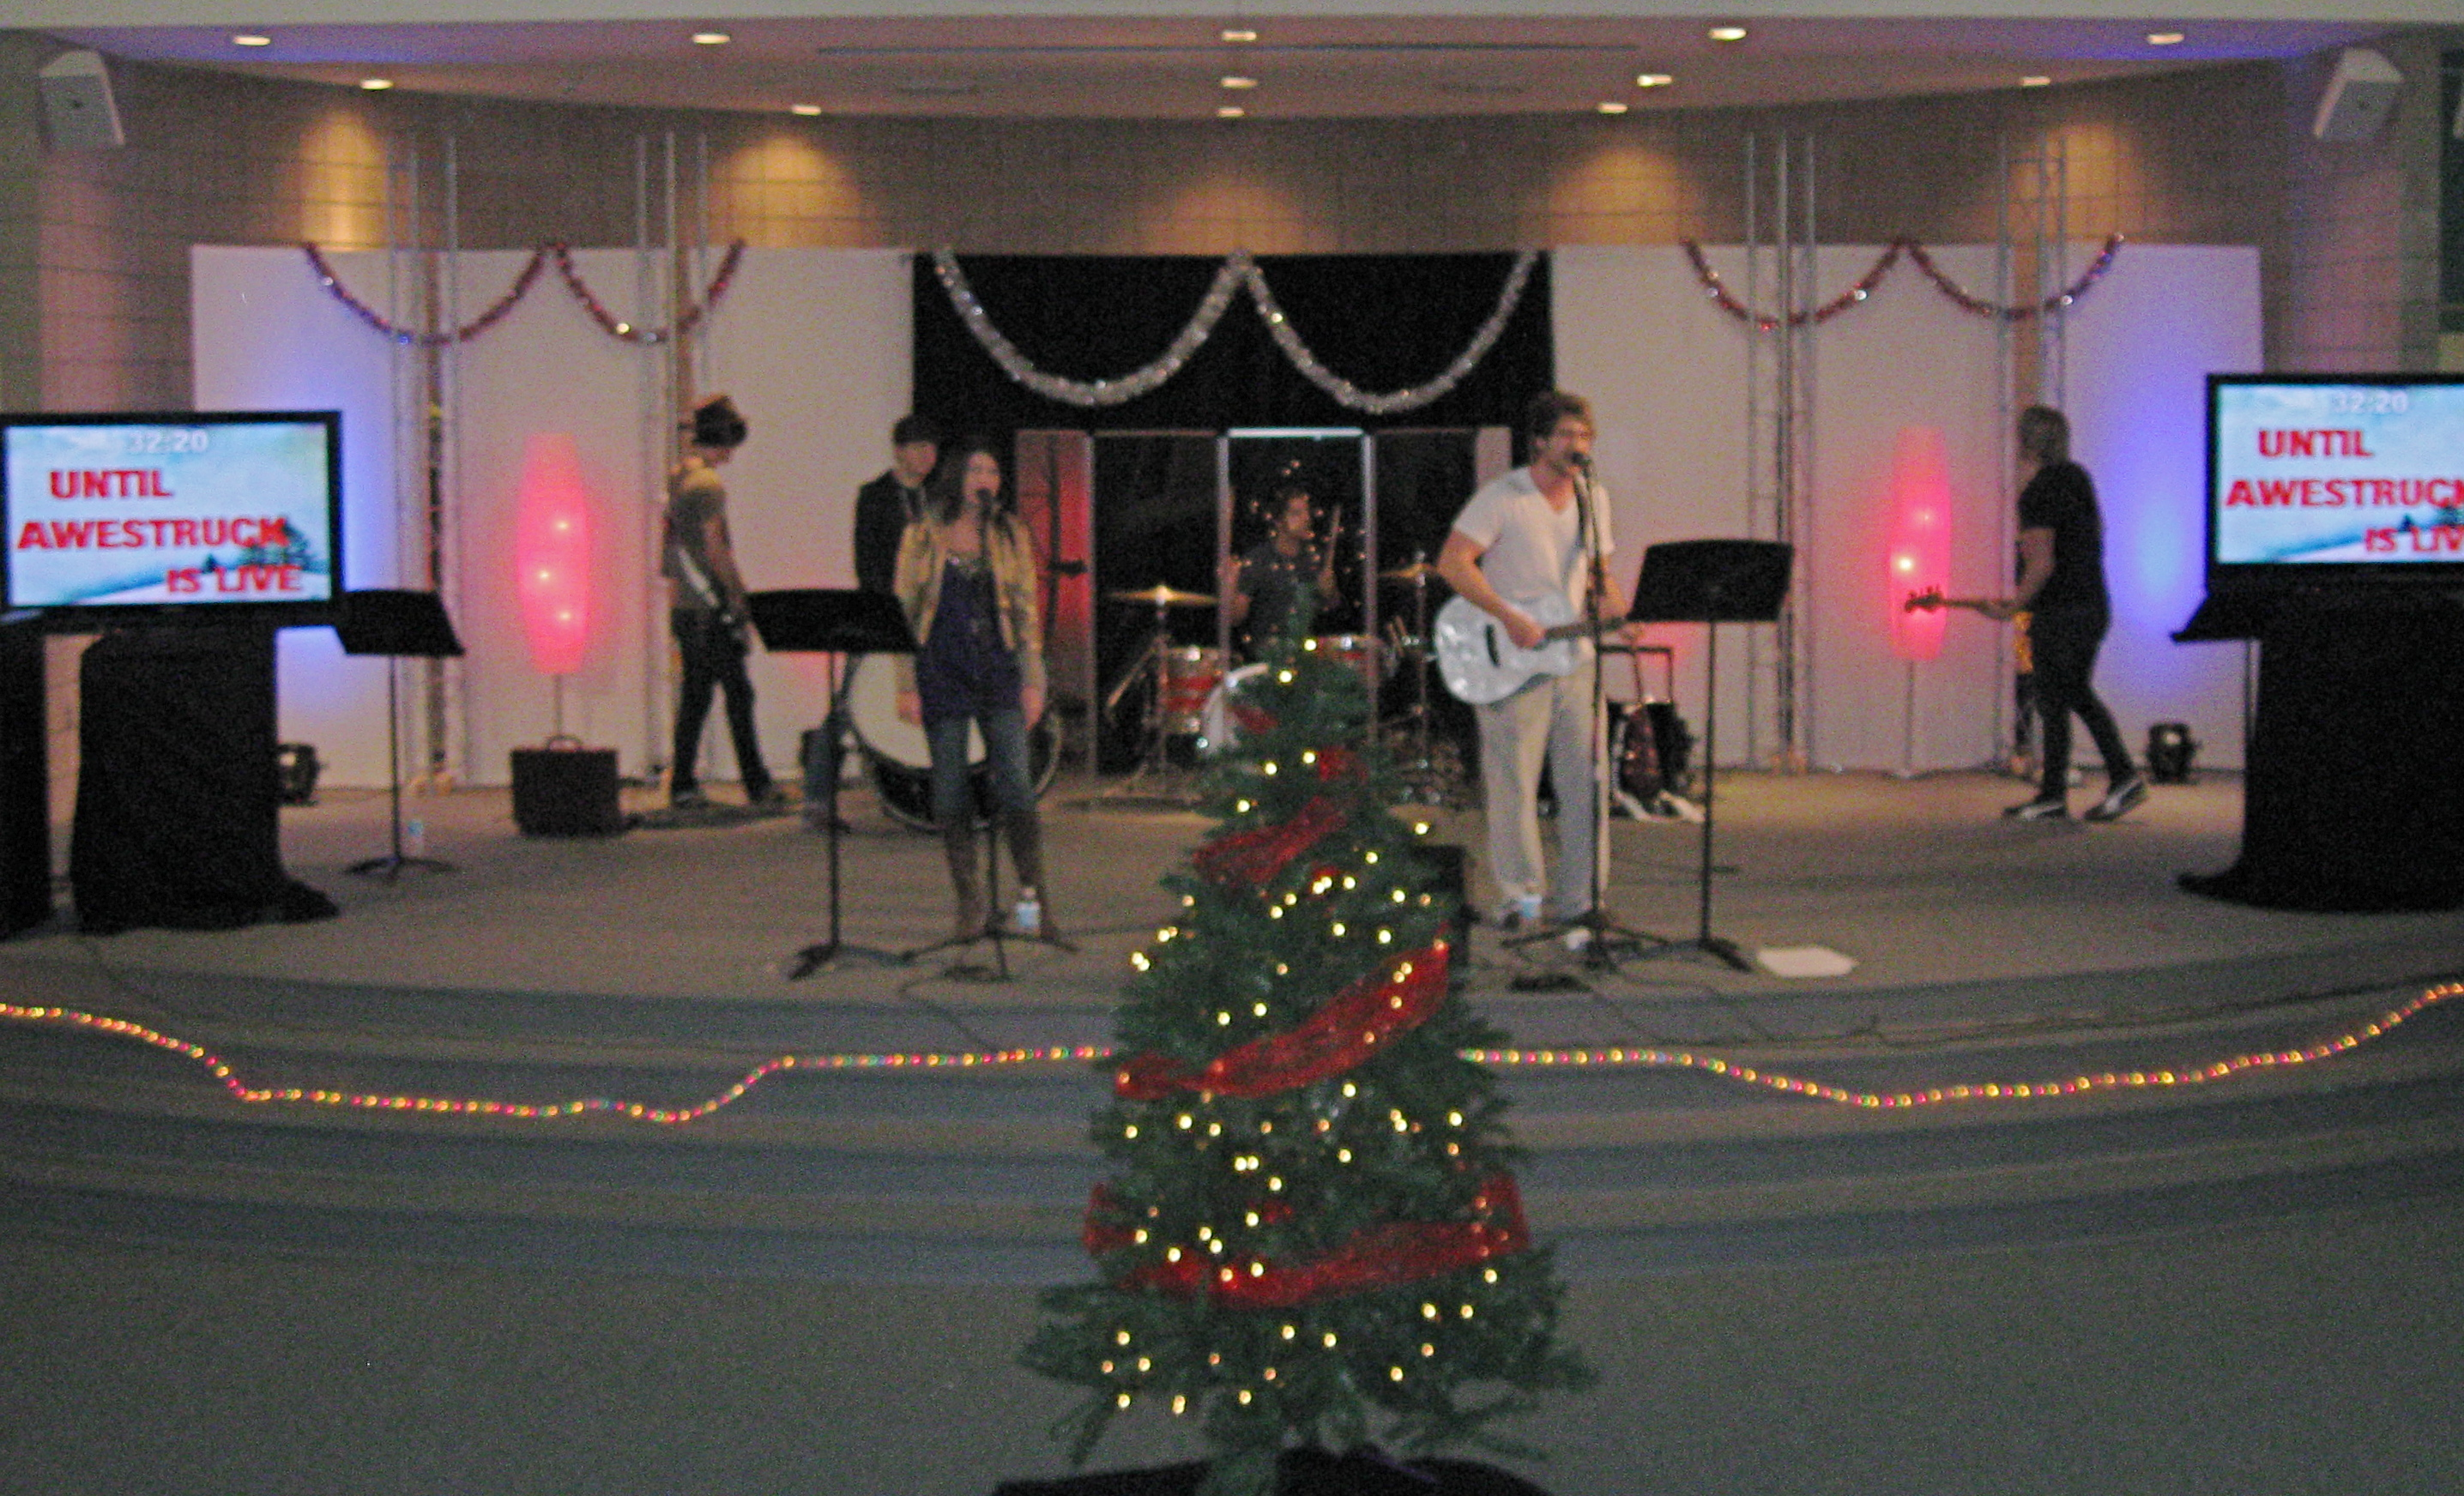 Small Church Stage Design Ideas And Hid Their Small Leds Behind